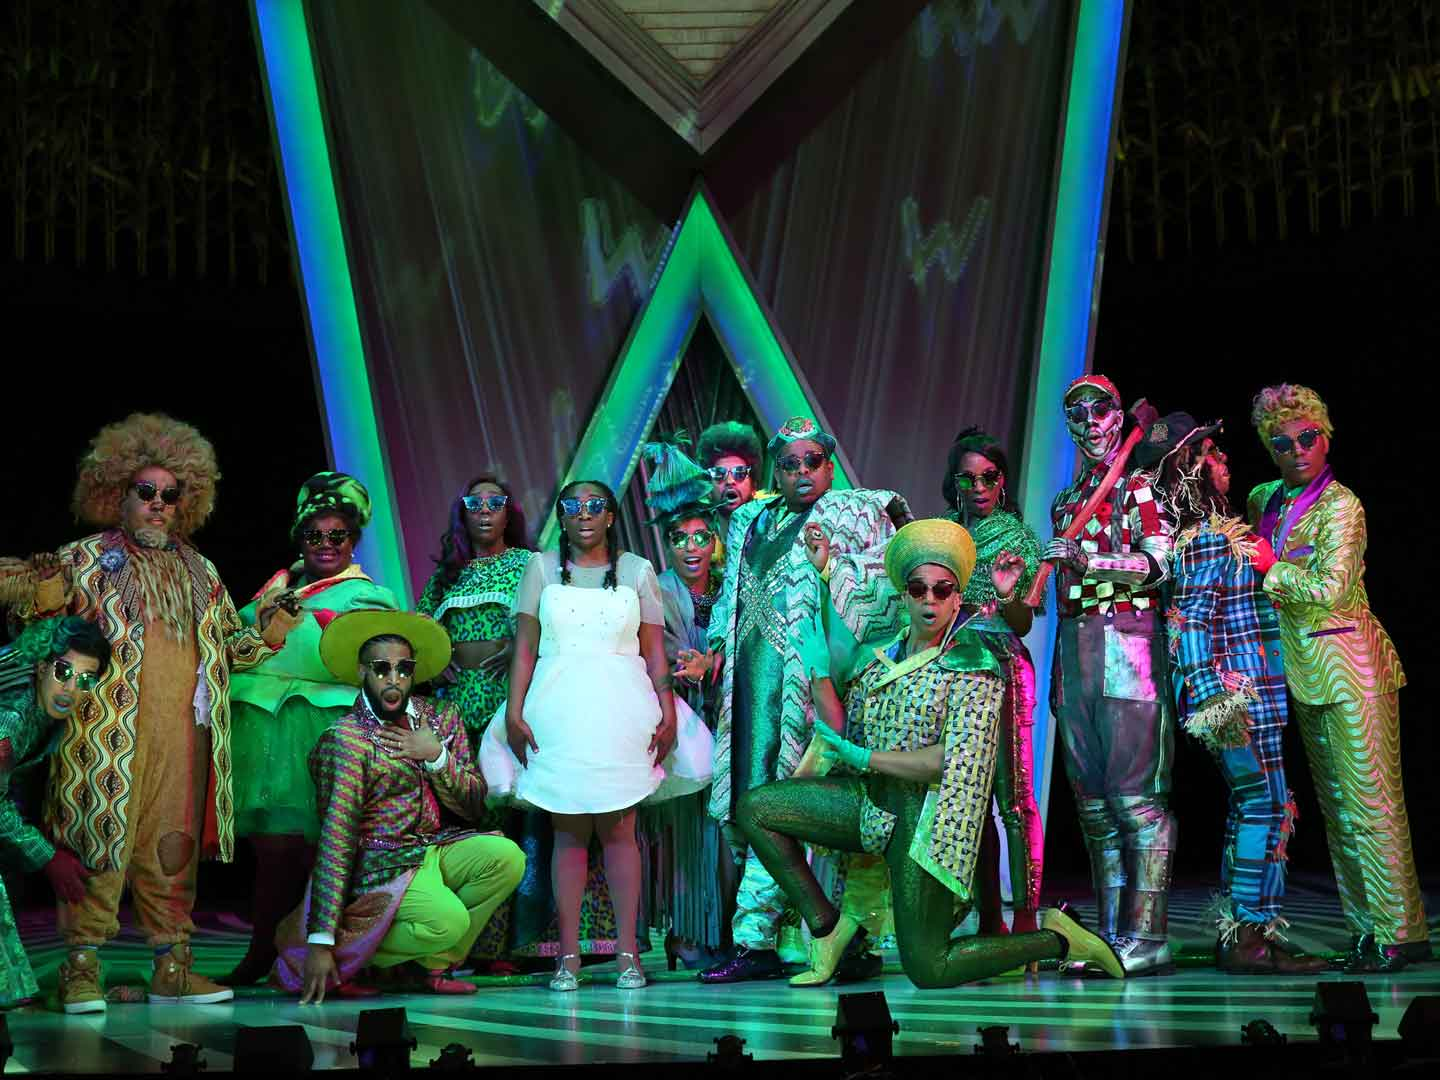 Cast of The Wiz decked out in 1970s stylized green outfits. The Wiz is an all- African-American cast.